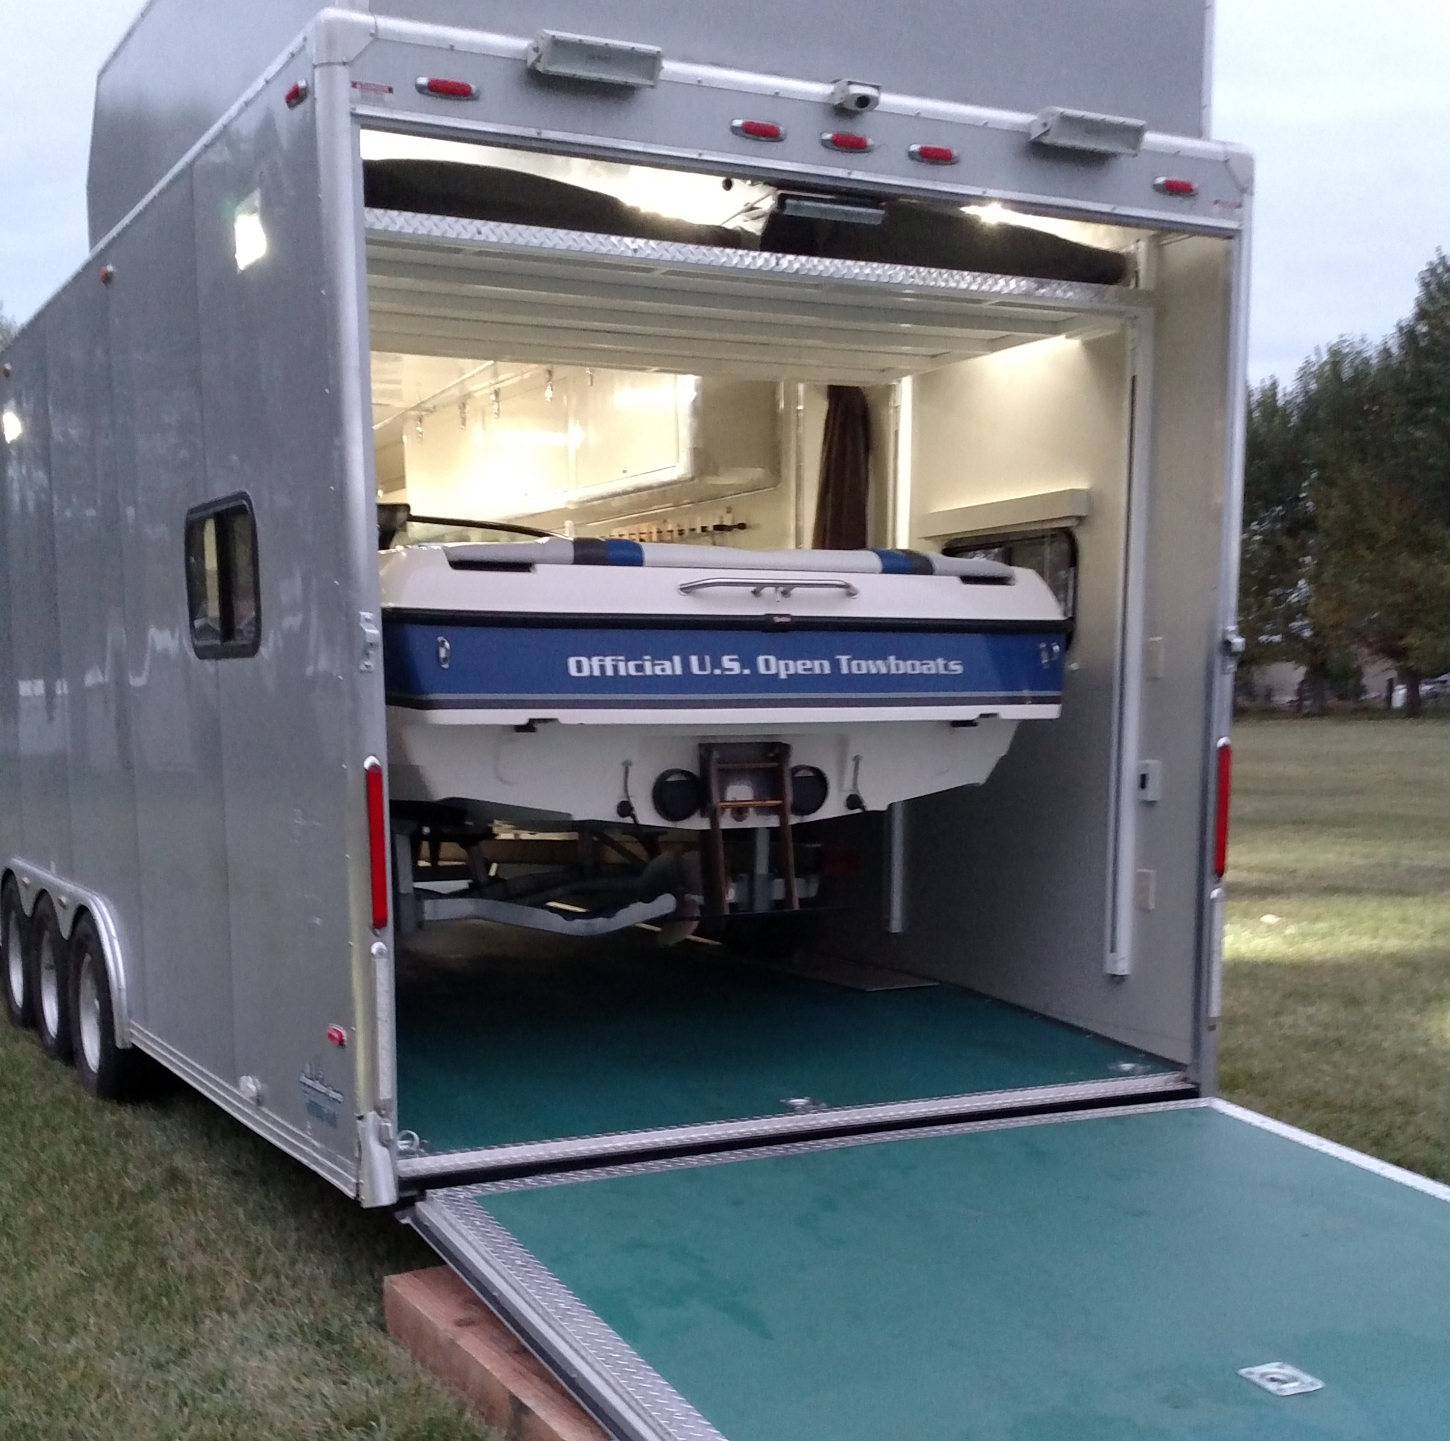 Double Decker Bed Anyone Haul A Boat Inside Their Toy Hauler Page 2